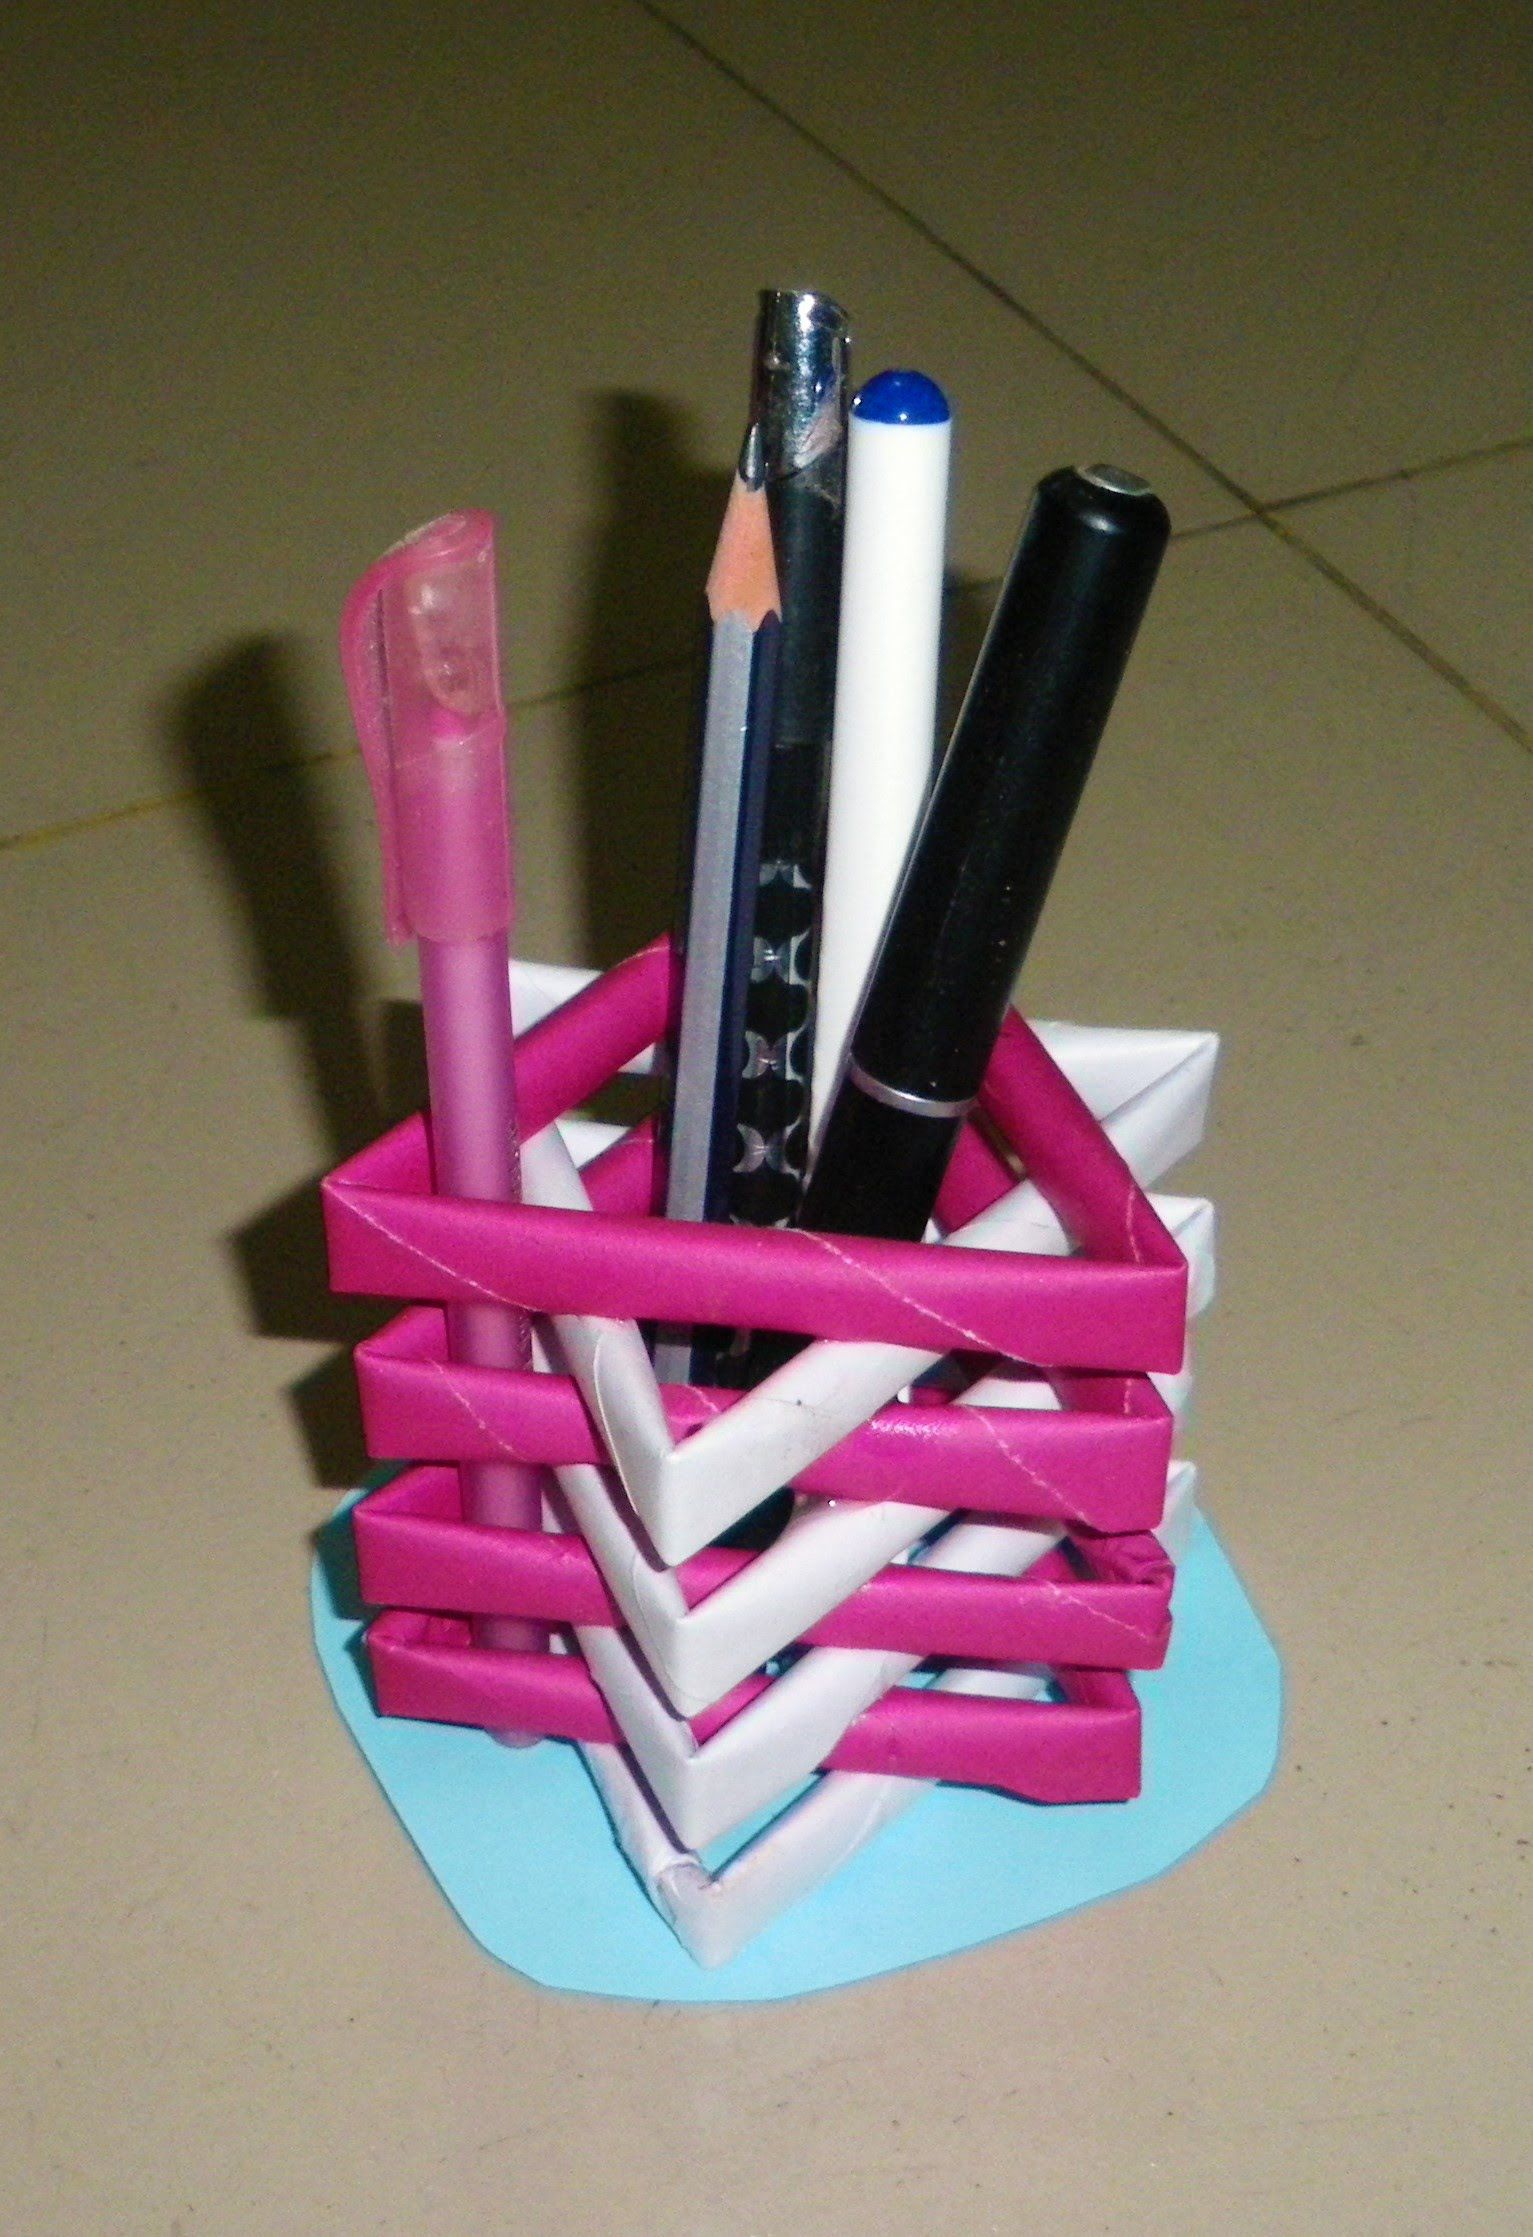 How to make a pen stand from waste material diy paper for Crafts by using waste material